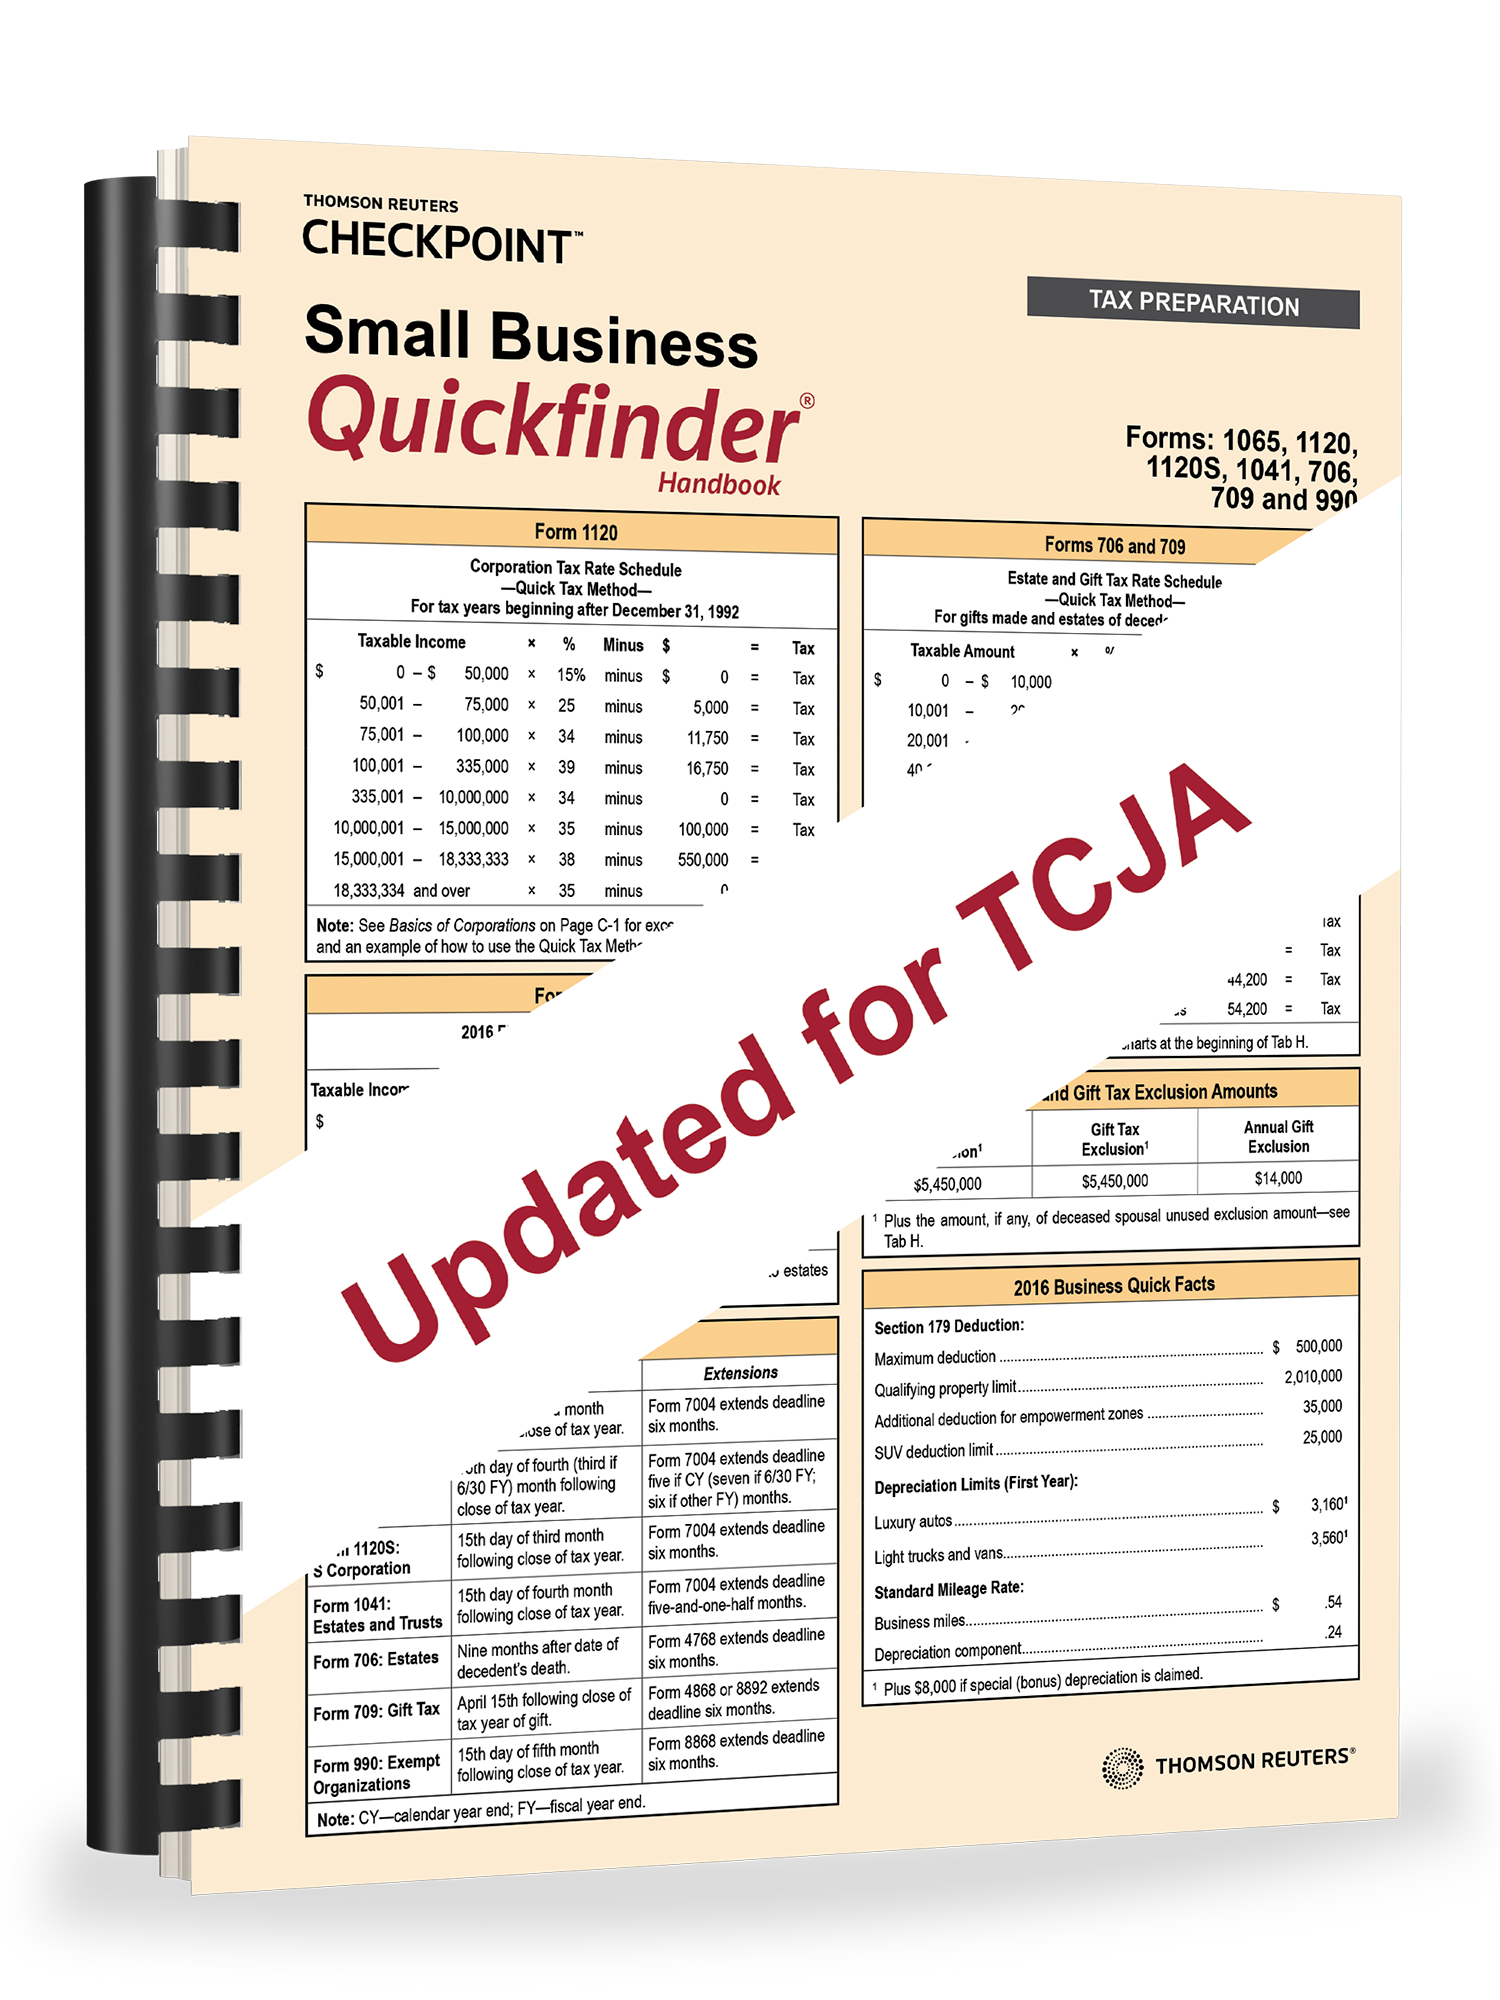 Small Business Quickfinder Handbook (2018) - #3885